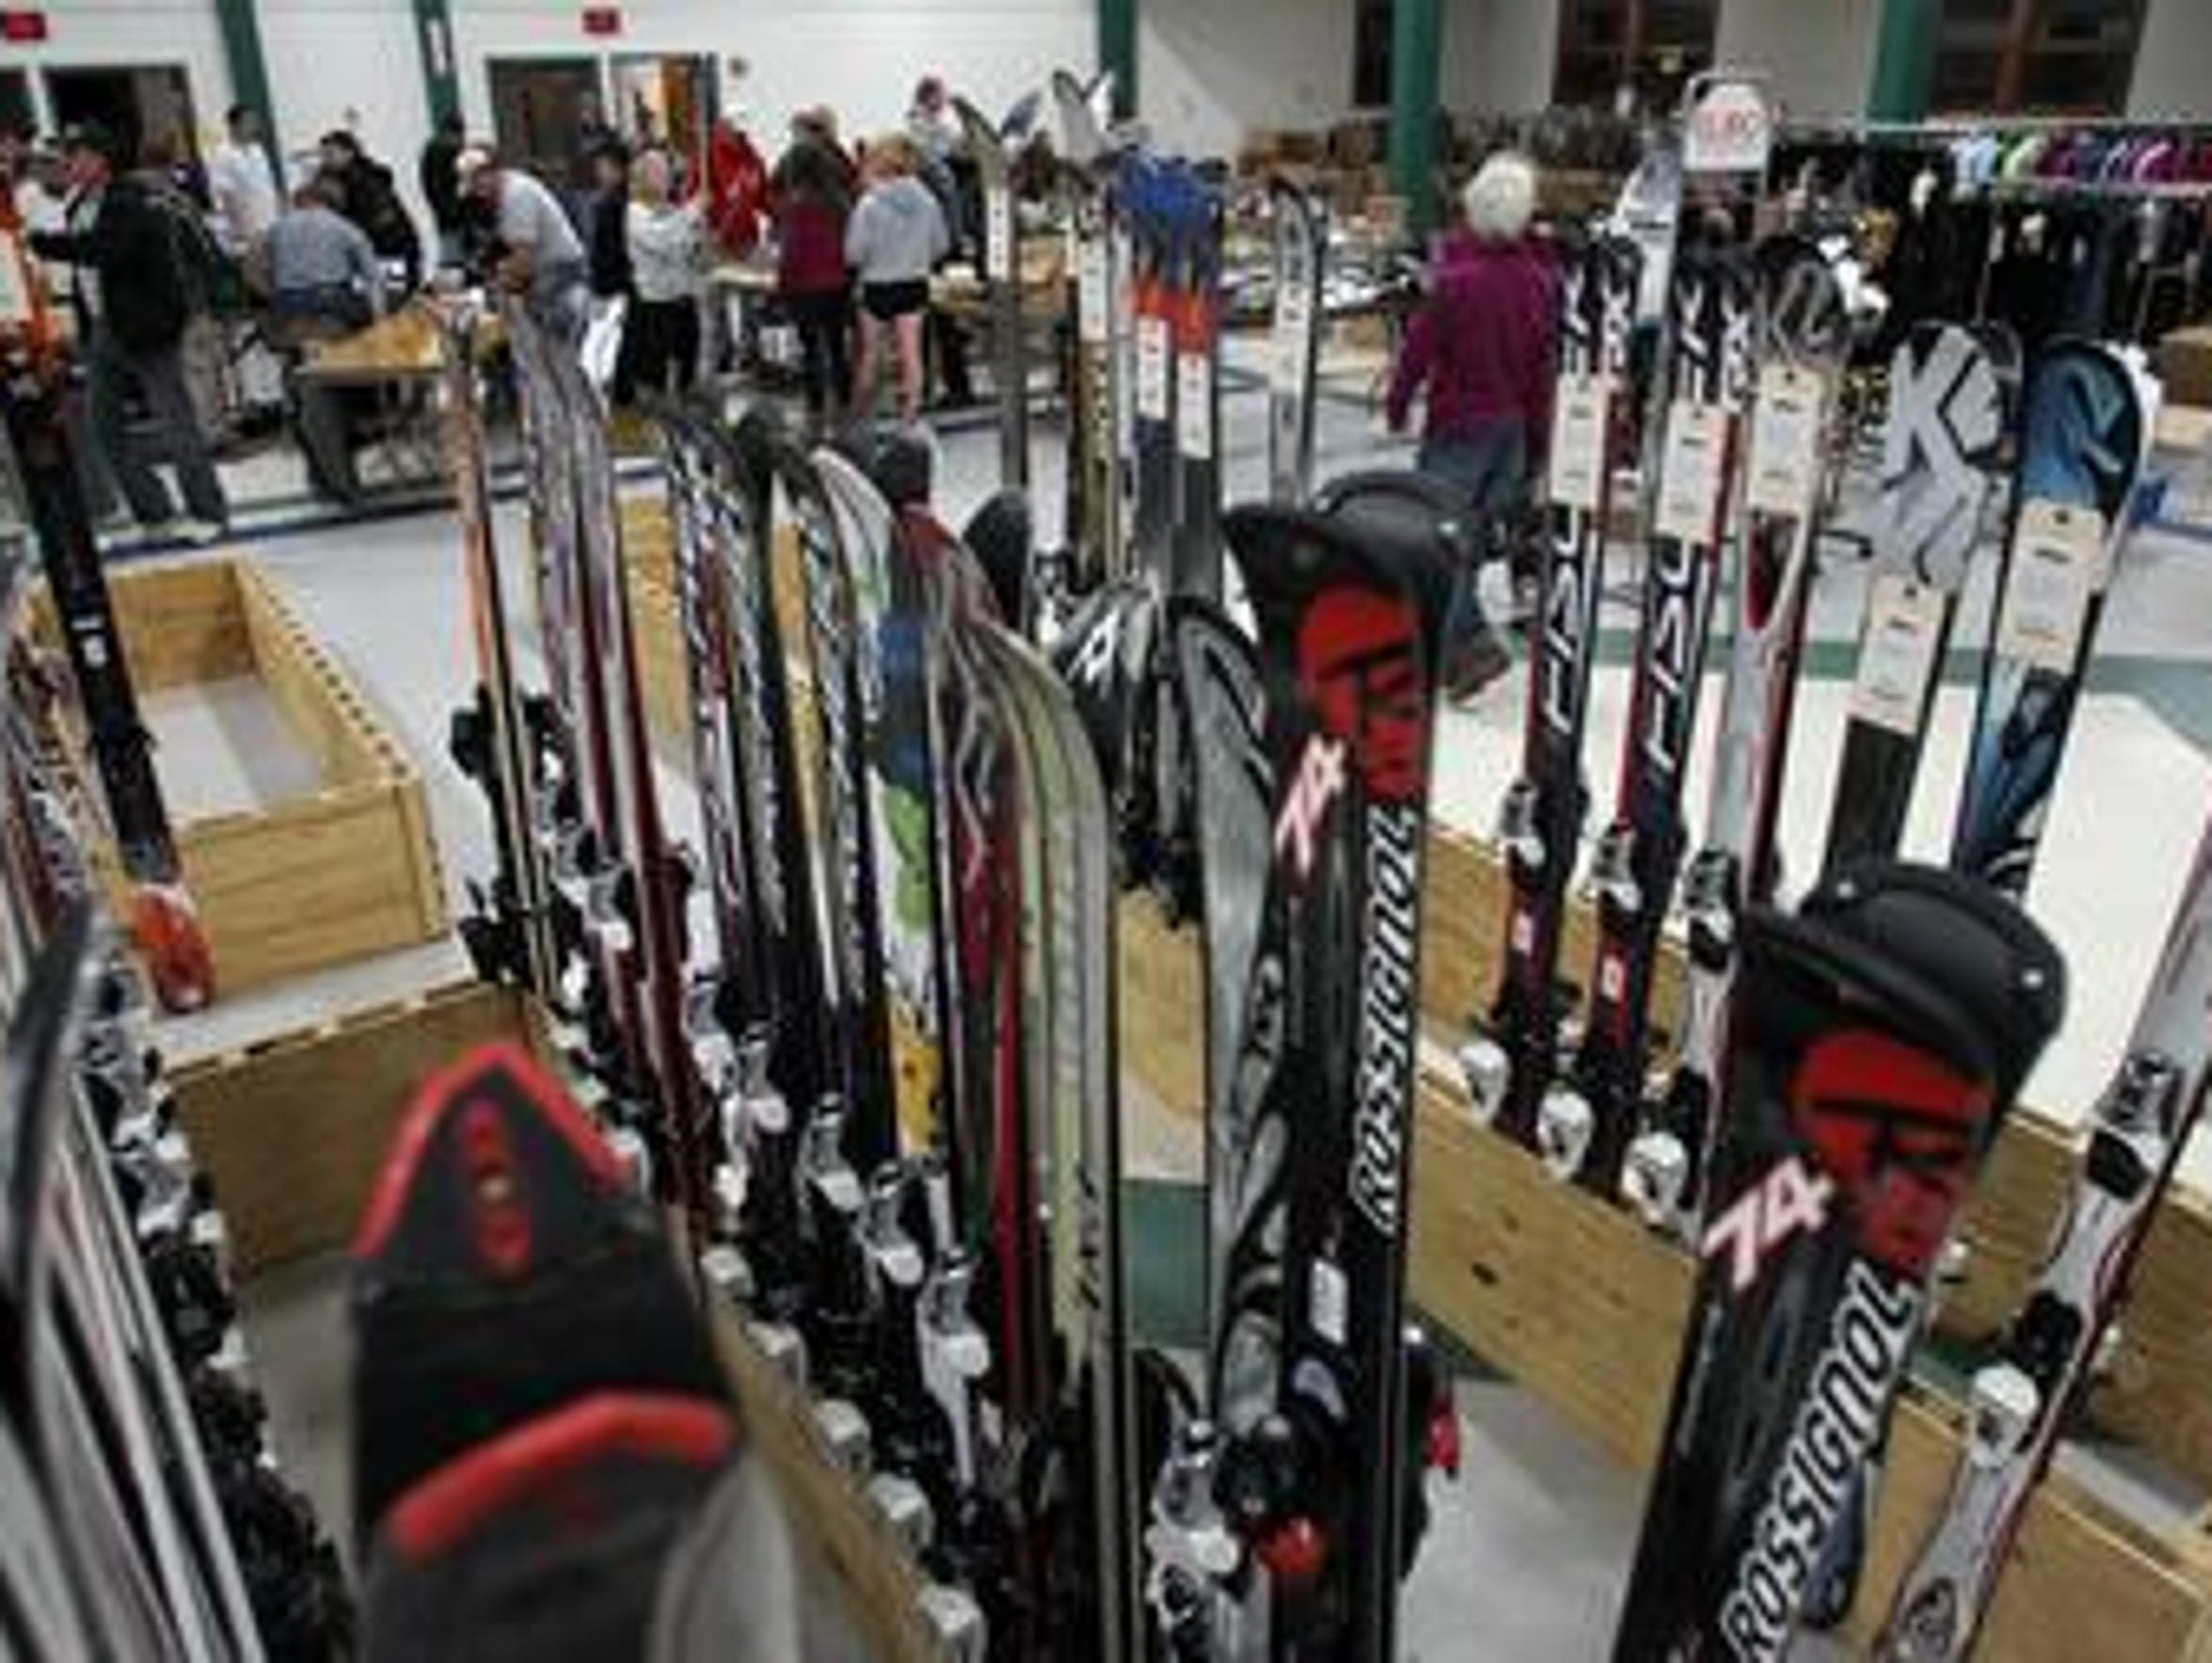 Hundreds of skis already stand in racks as people check